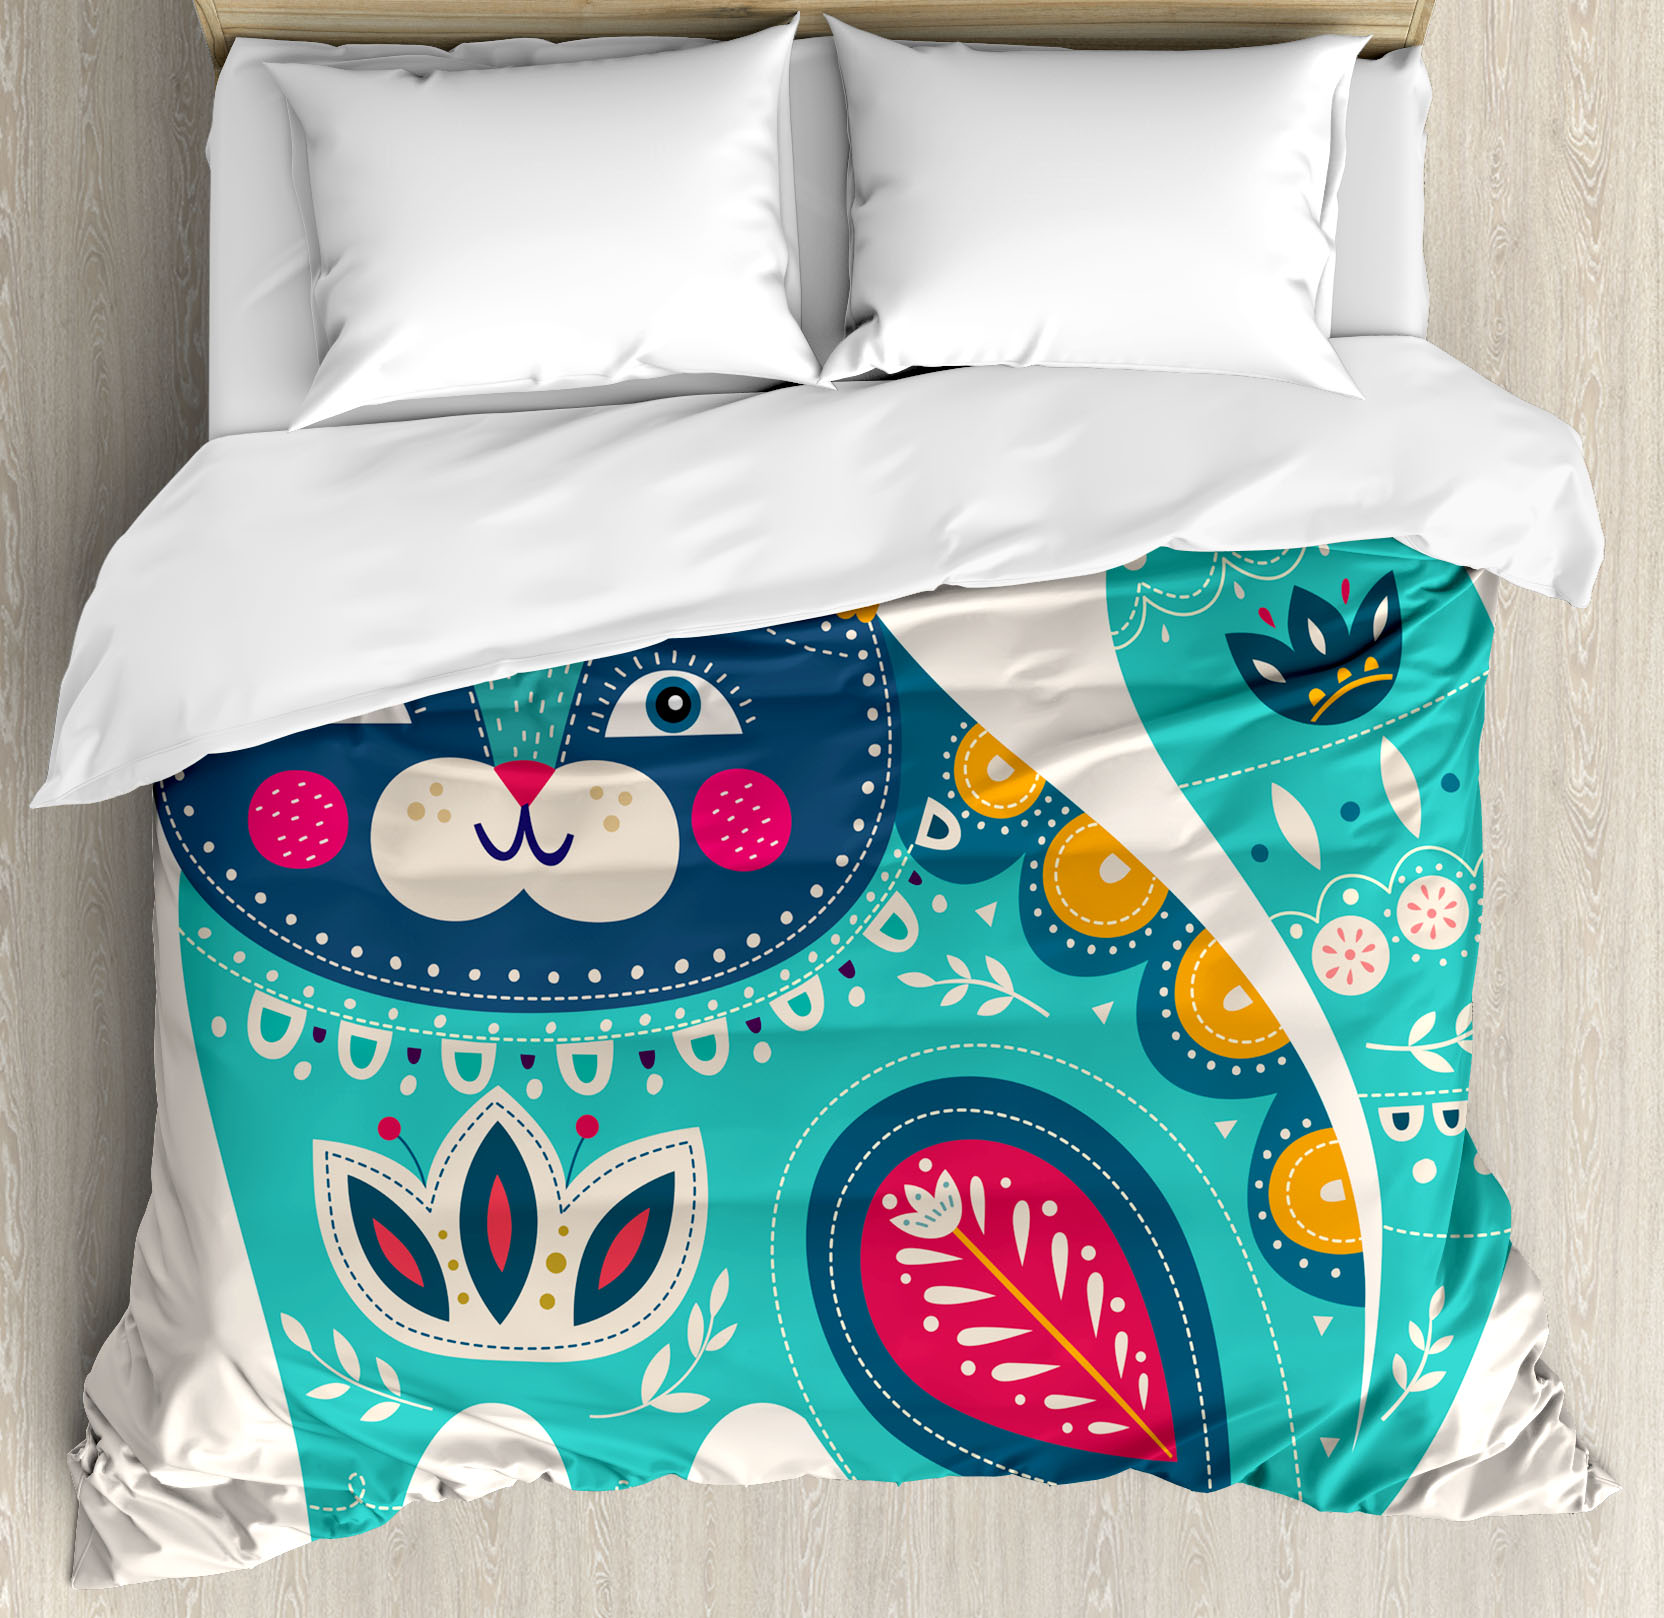 Animal Decor Queen Size Duvet Cover Set, Cute Chubby Smiling Cat with Colorful Paisley Ethnic Indian Style Figures Artwork, Decorative 3 Piece Bedding Set with 2 Pillow Shams, Colored, by Ambesonne